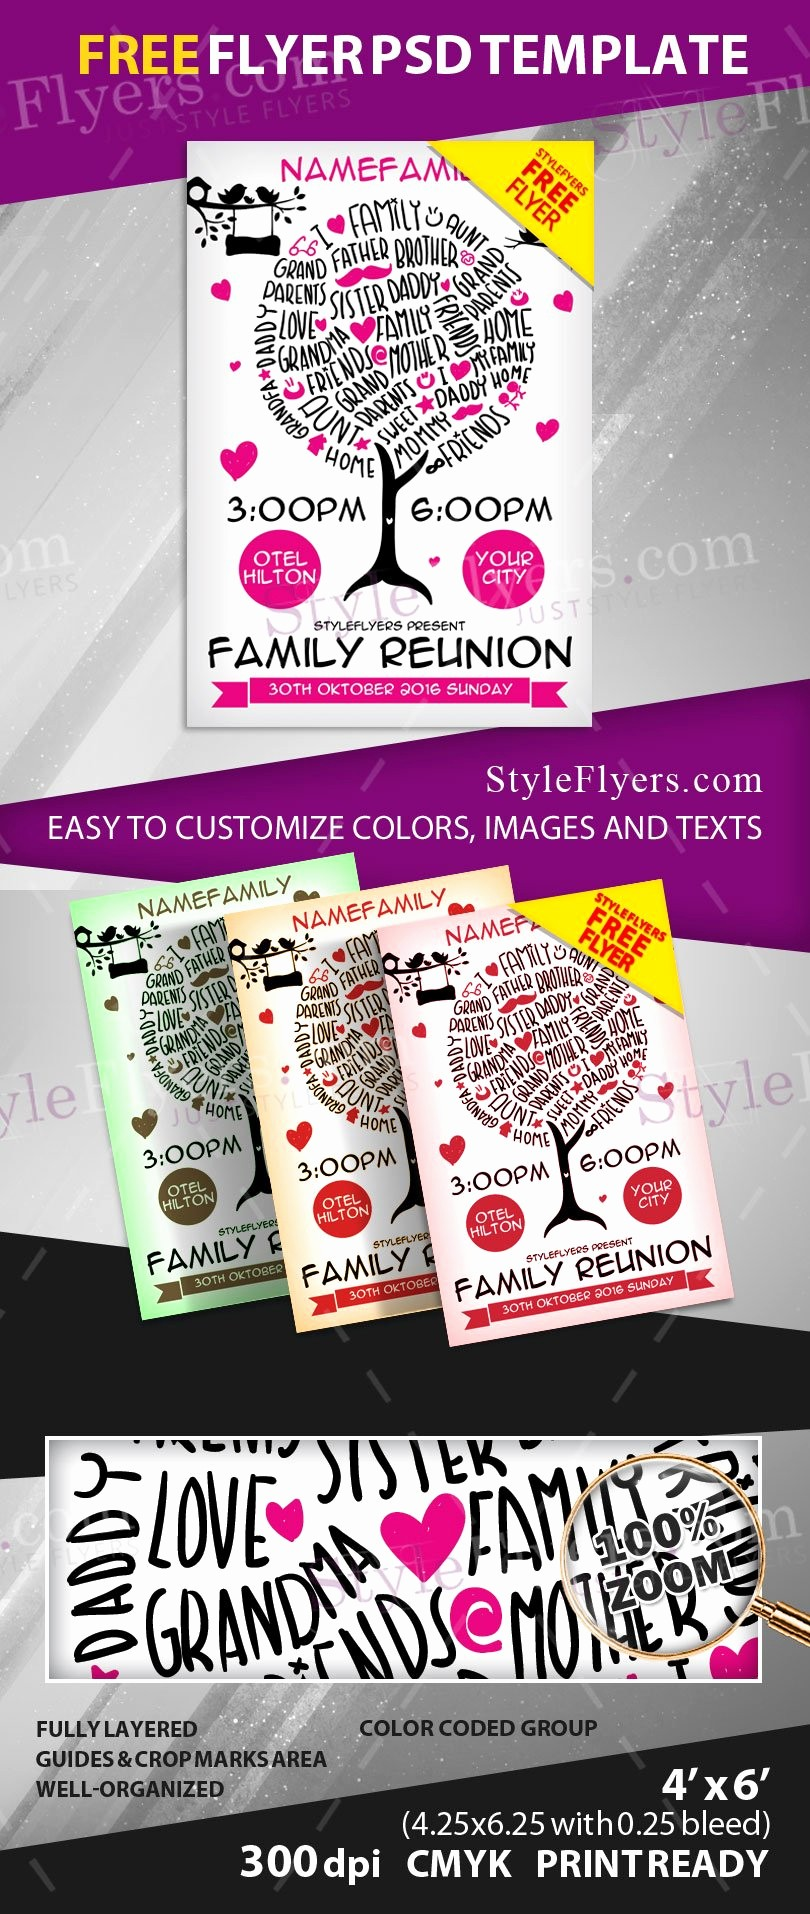 Free Family Reunion Flyers Templates Luxury Family Reunion Free Psd Flyer Template Free Download